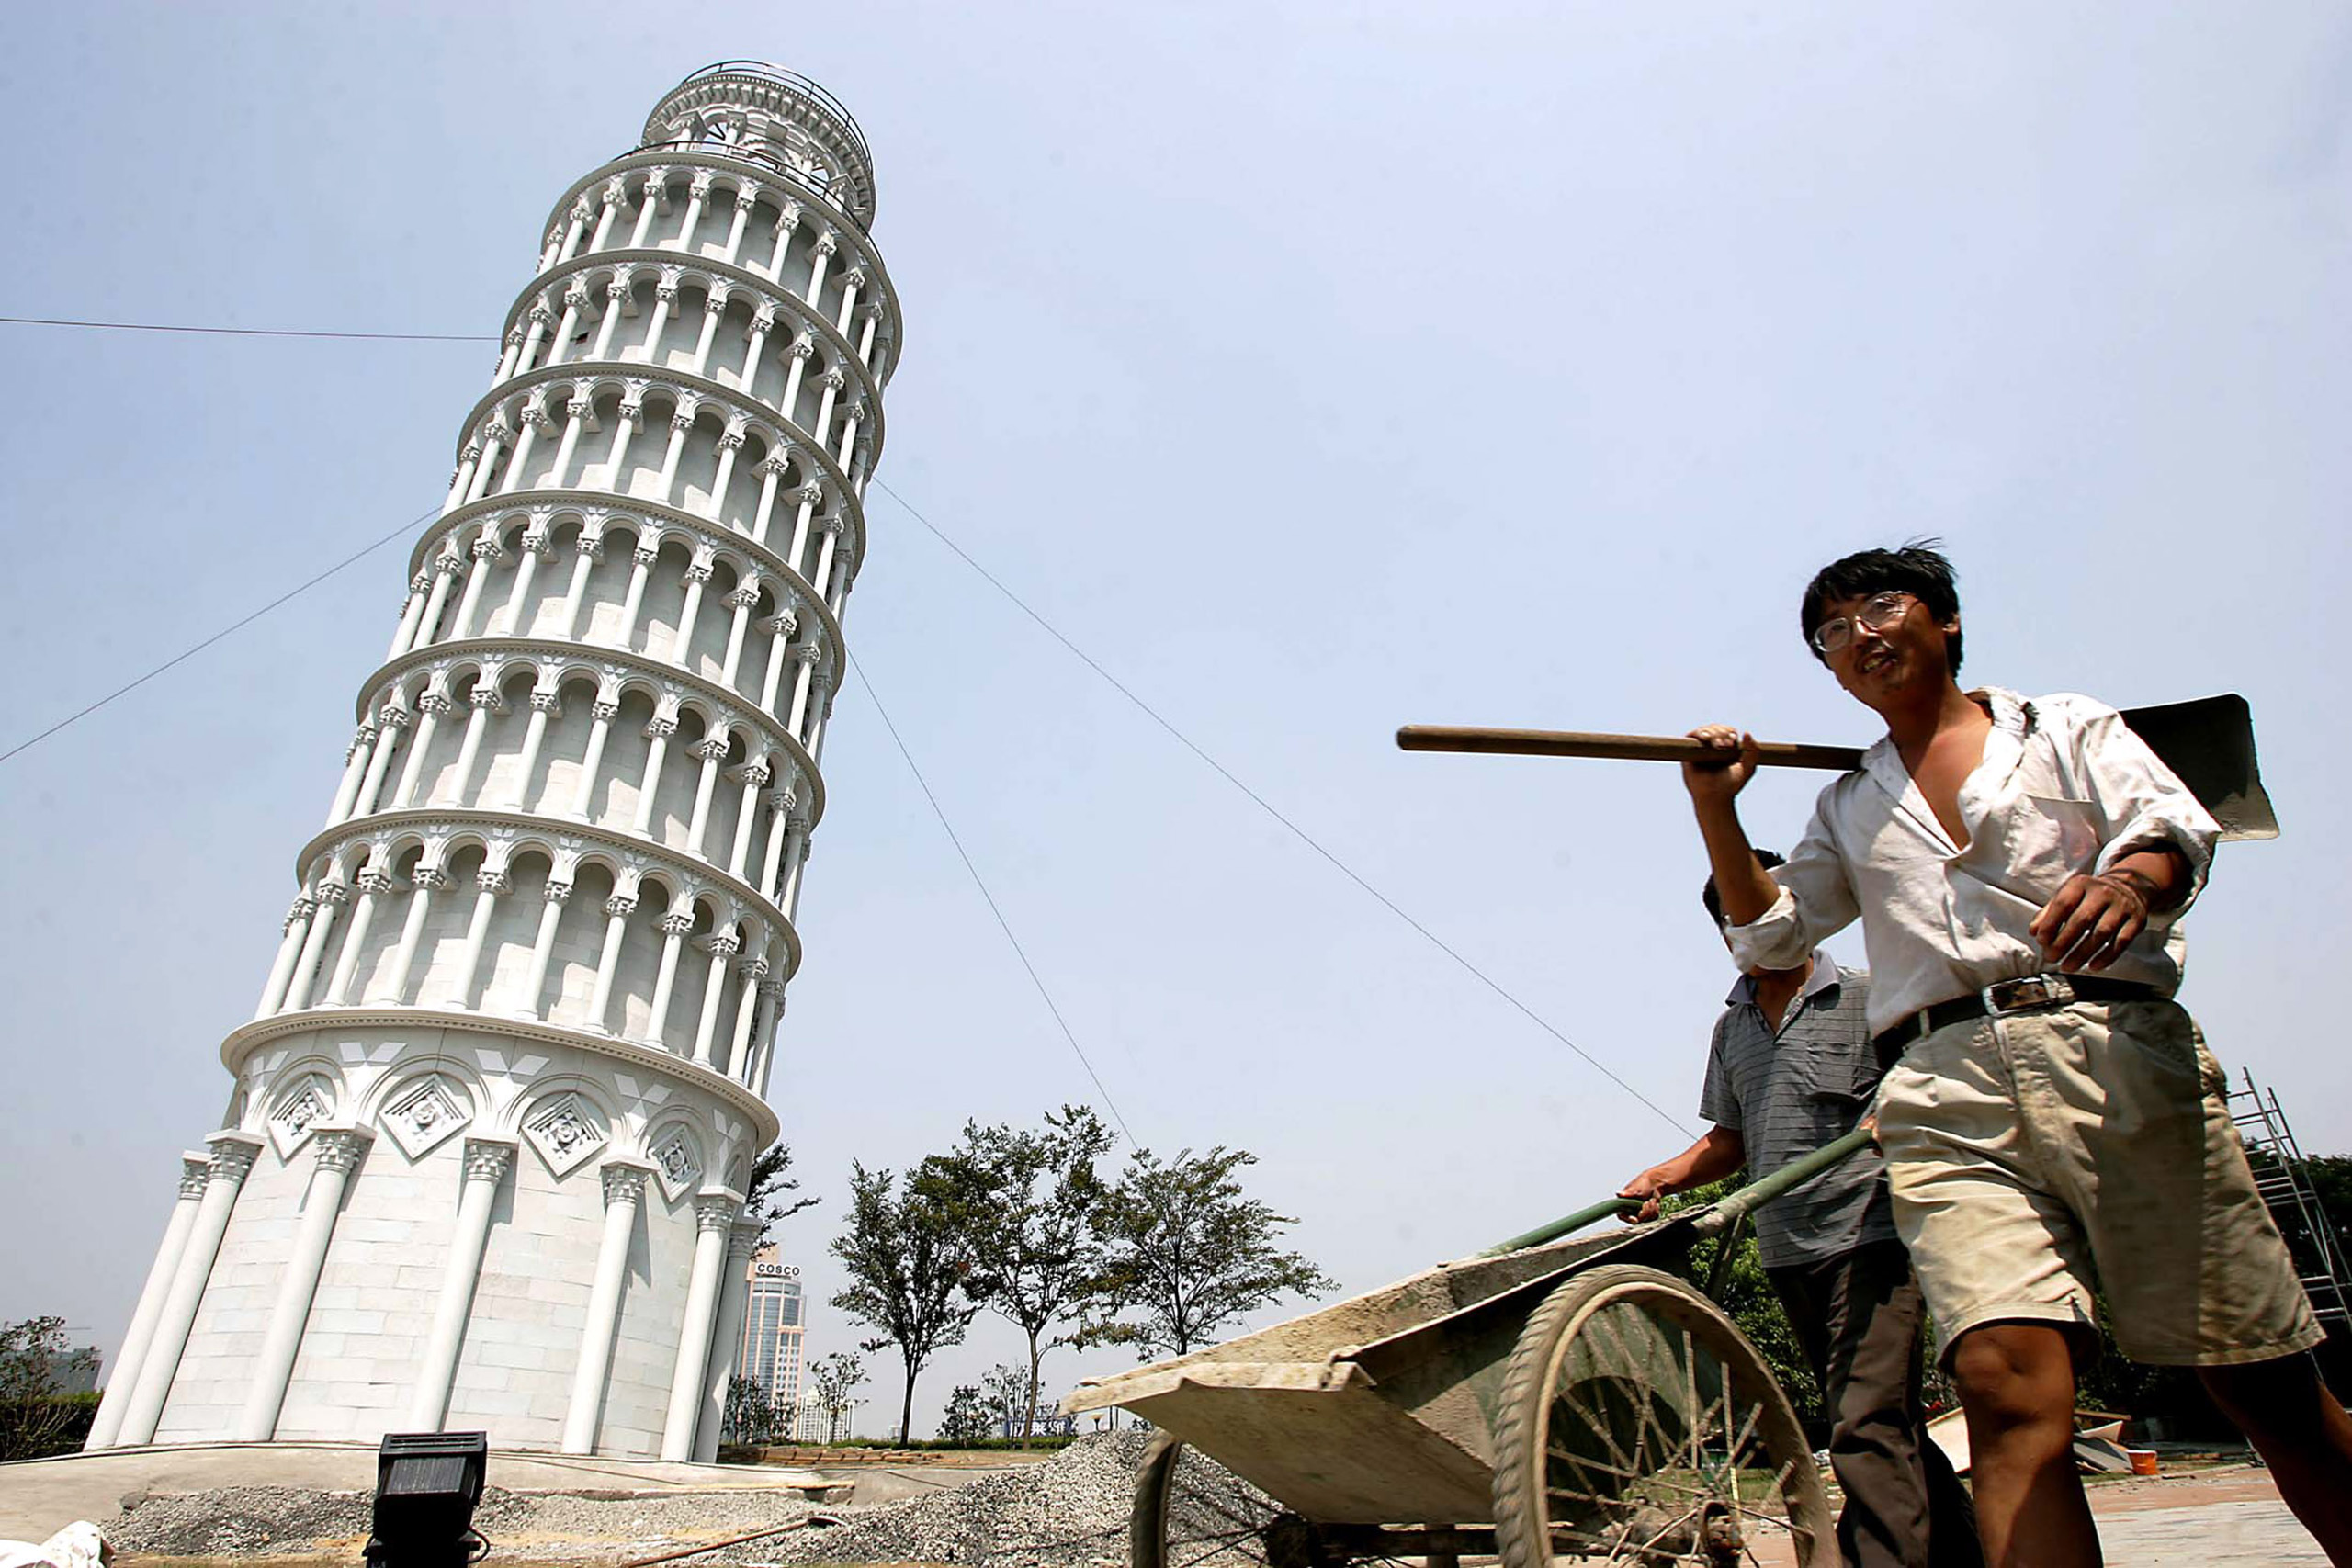 Chinese workers walk past a 1:4 scale mini leaning tower of Pisa in Shanghai.